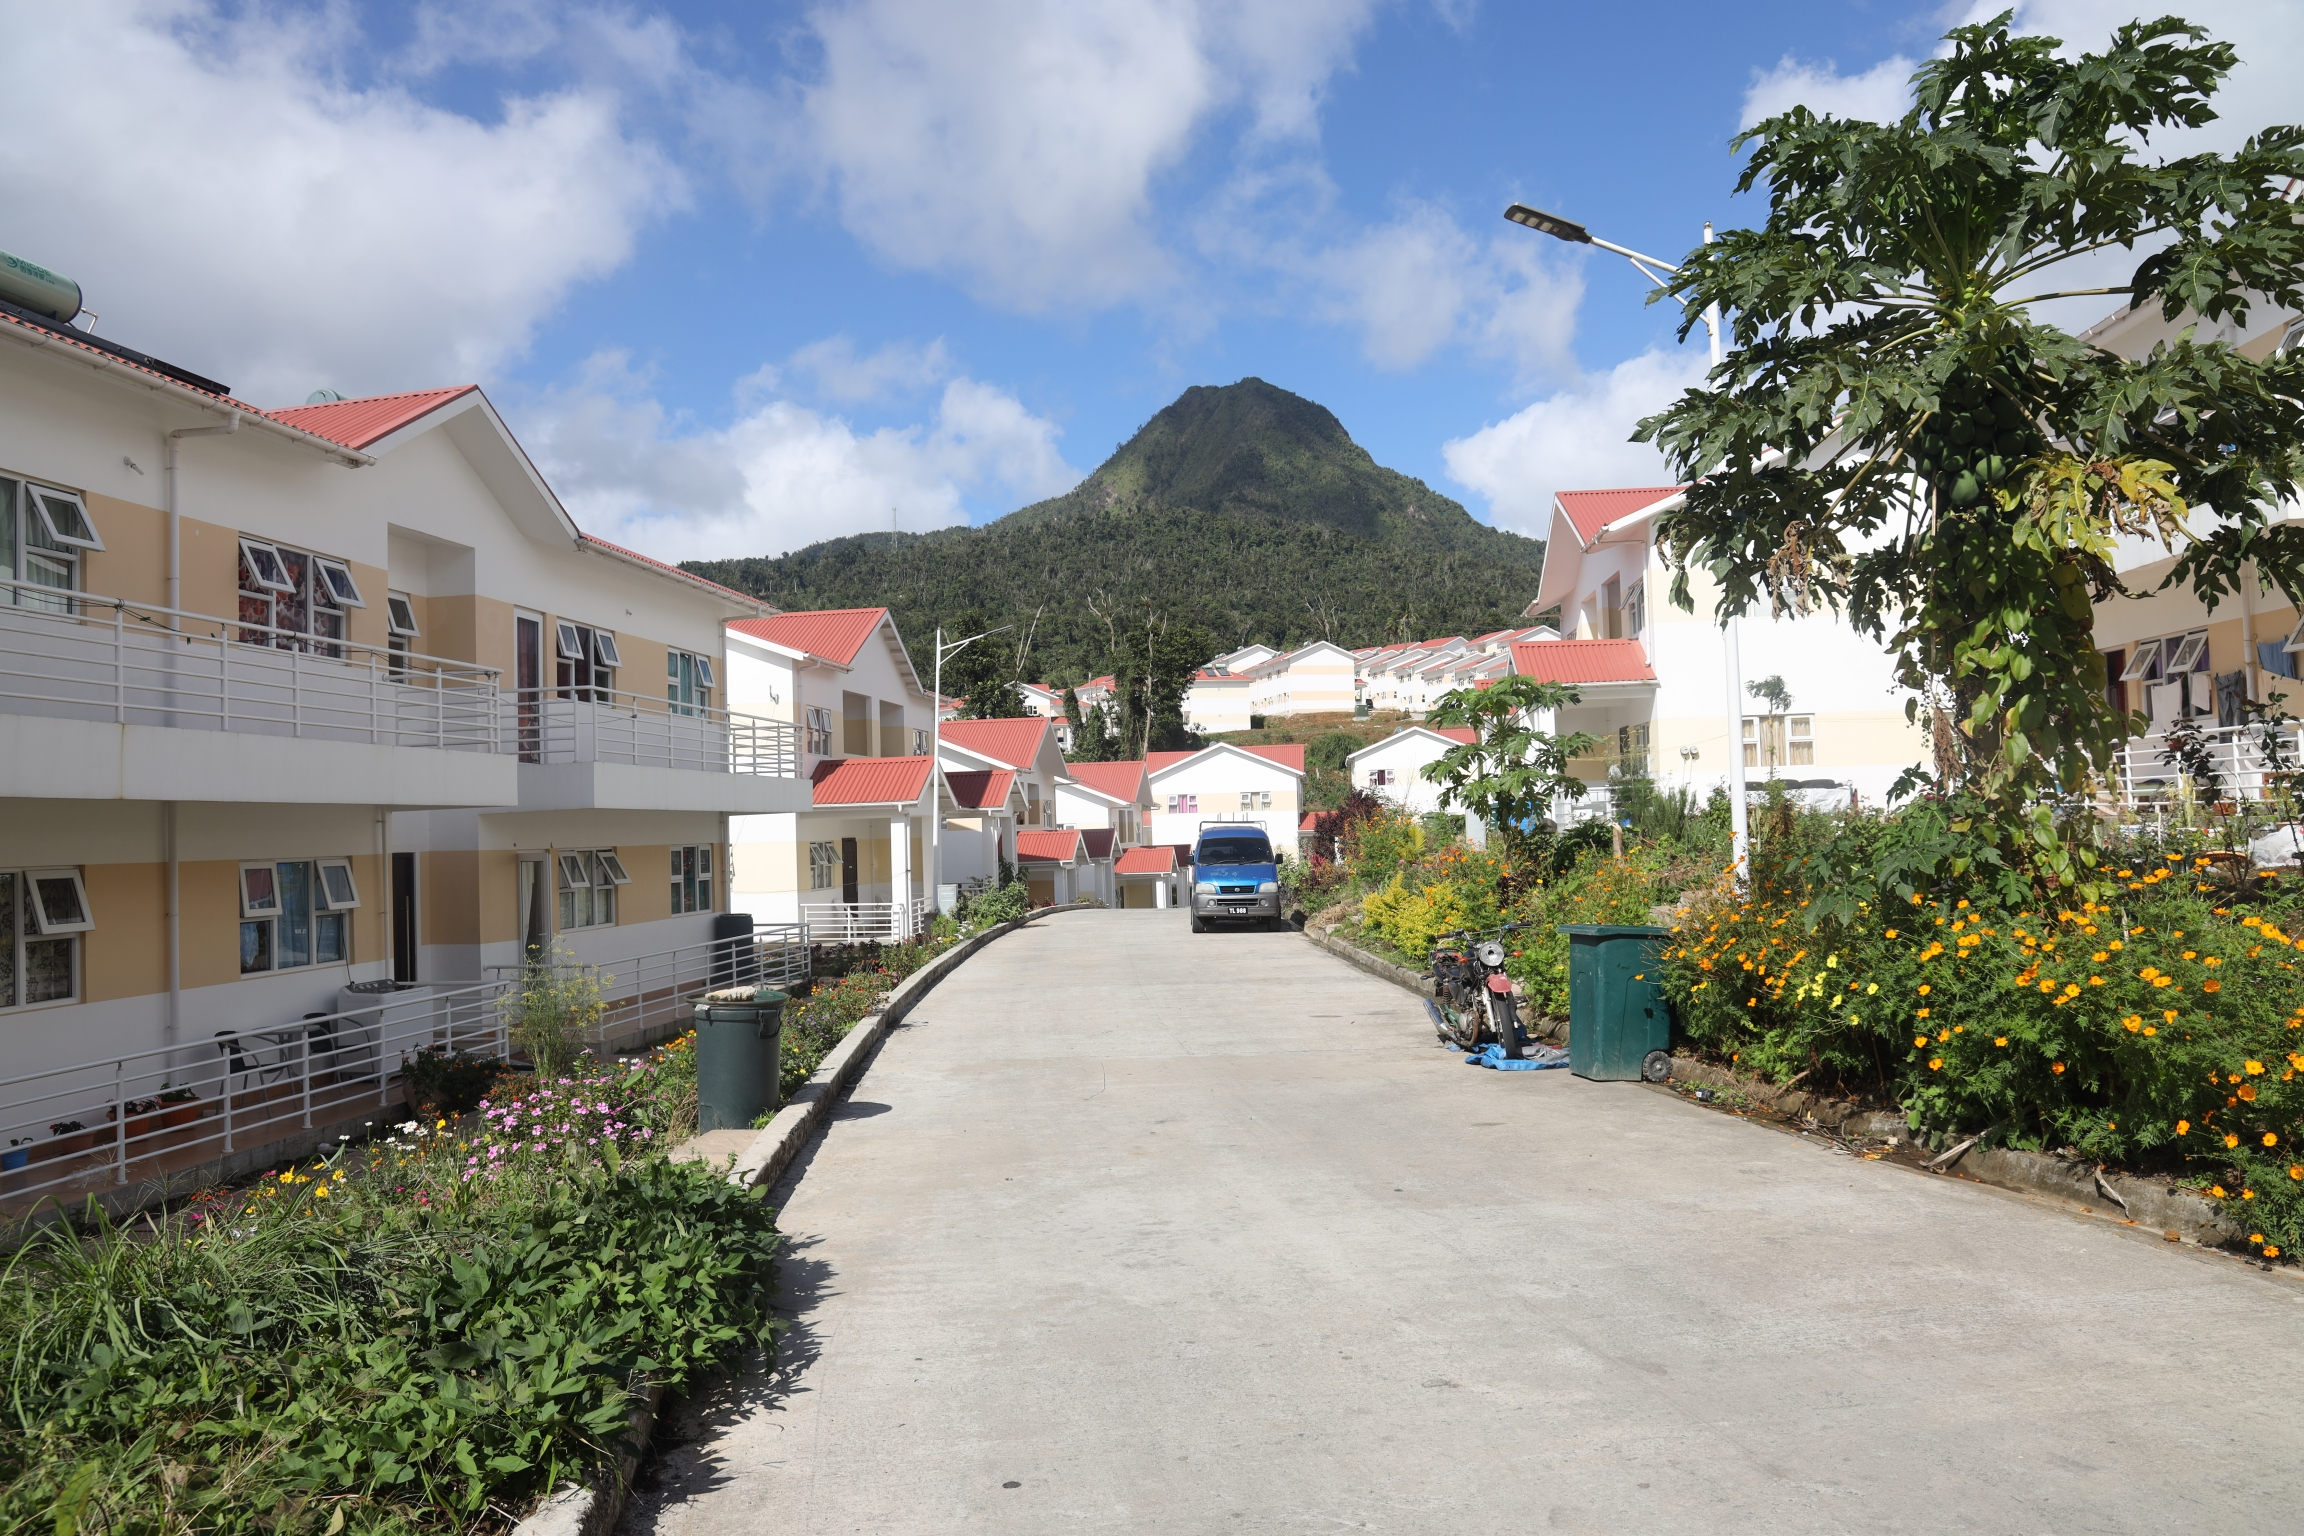 Some 1,000 new homes have been built in Dominica for residents who lost theirs in Tropical Storm Erika in 2015 or Hurricane Maria in 2017.